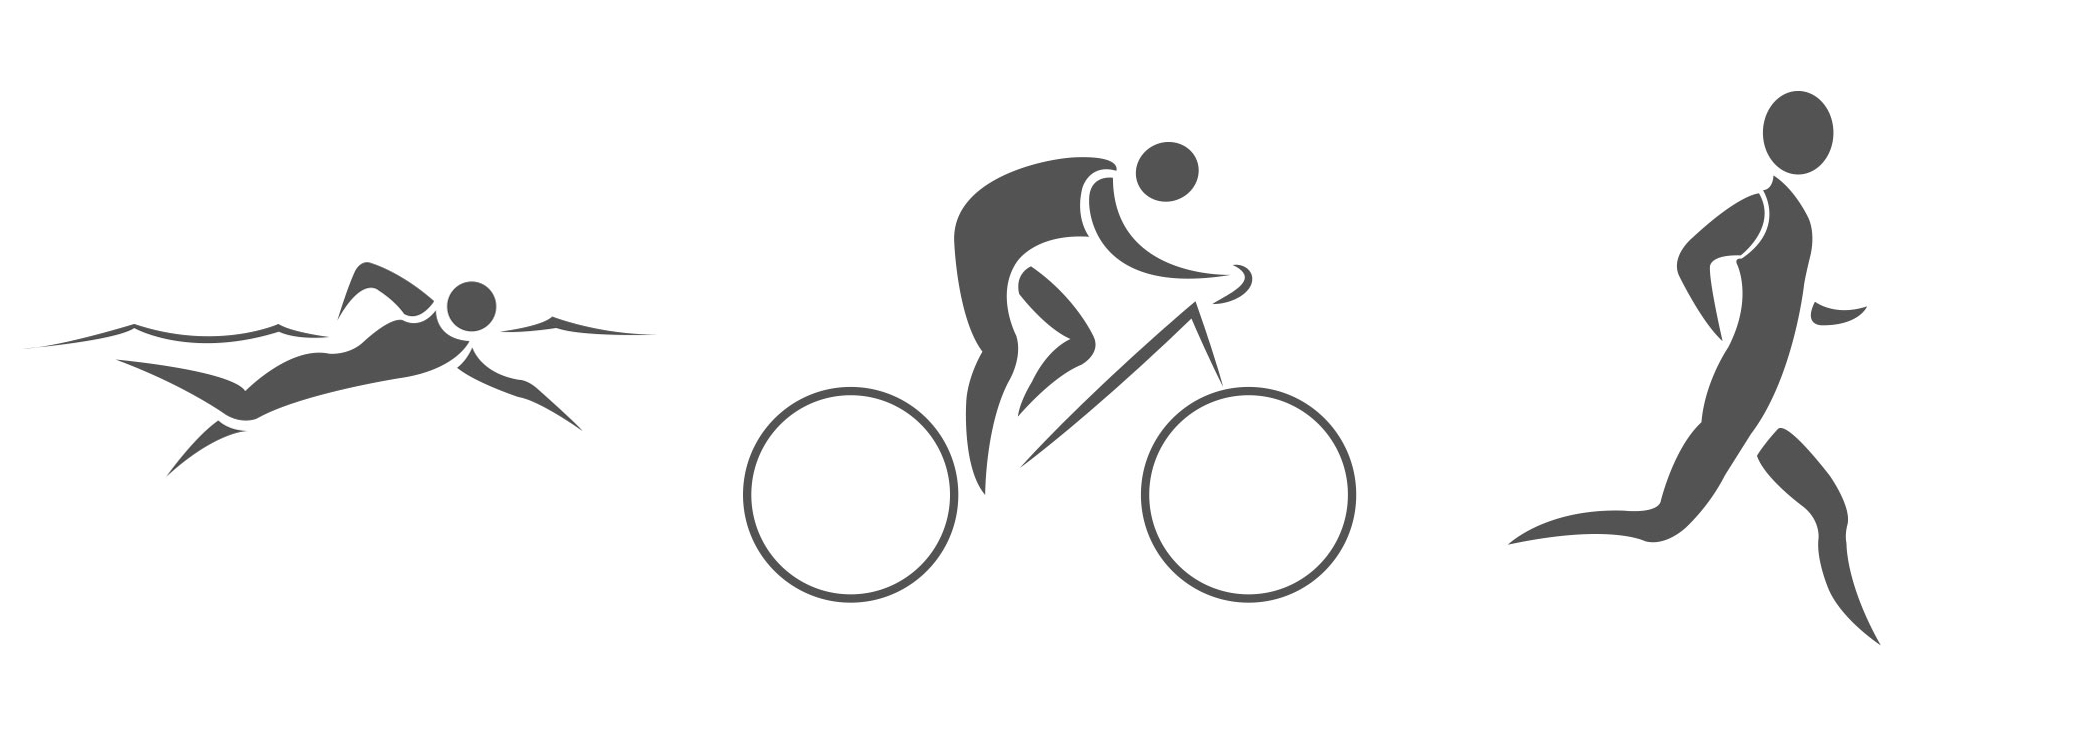 pictoYAKATriathlon2